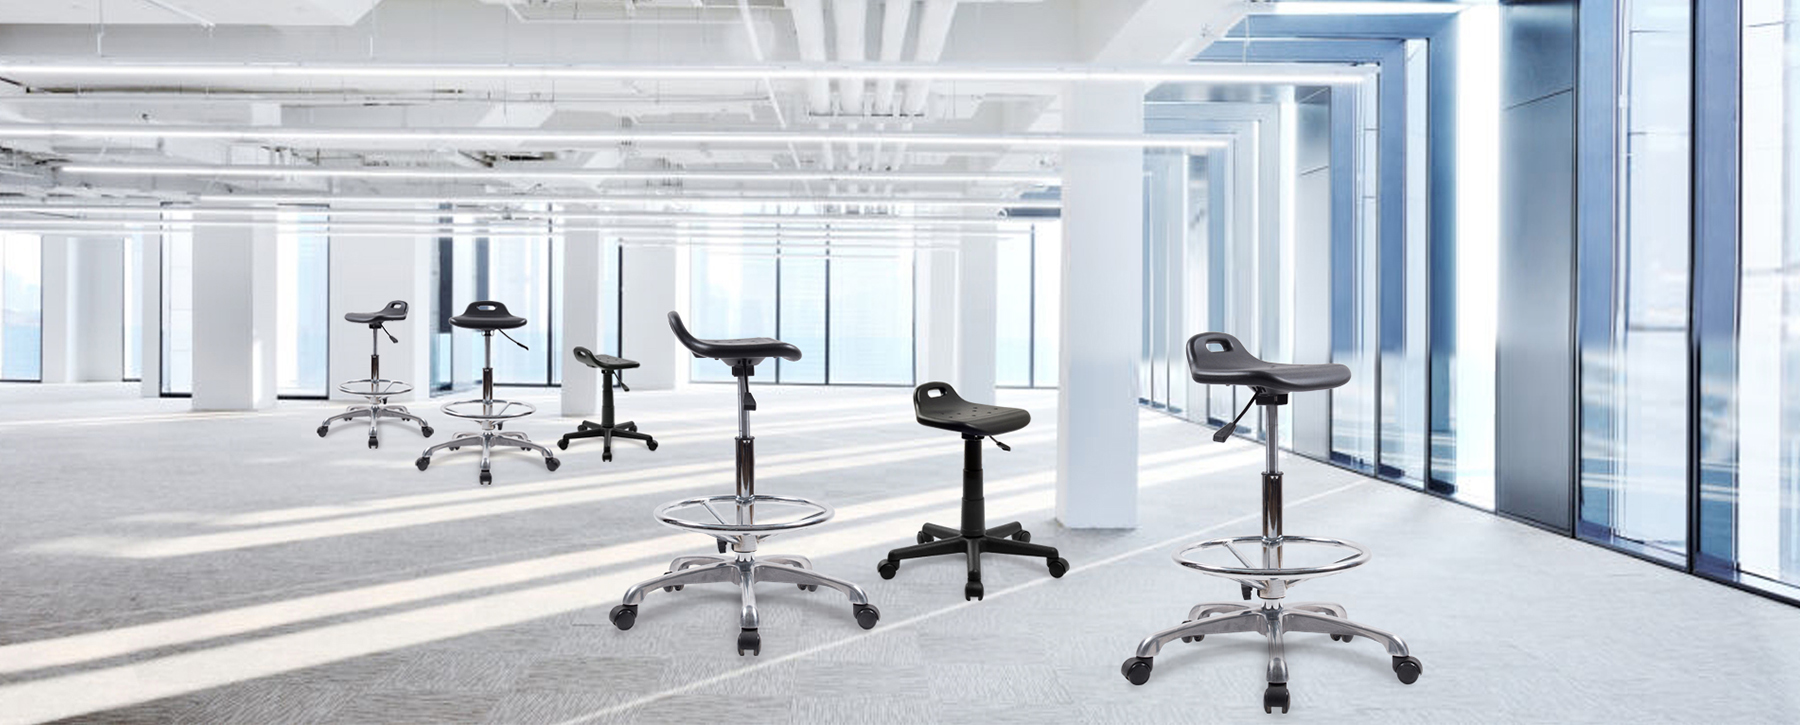 Office Chair Singapore - Ardent Office Furniture